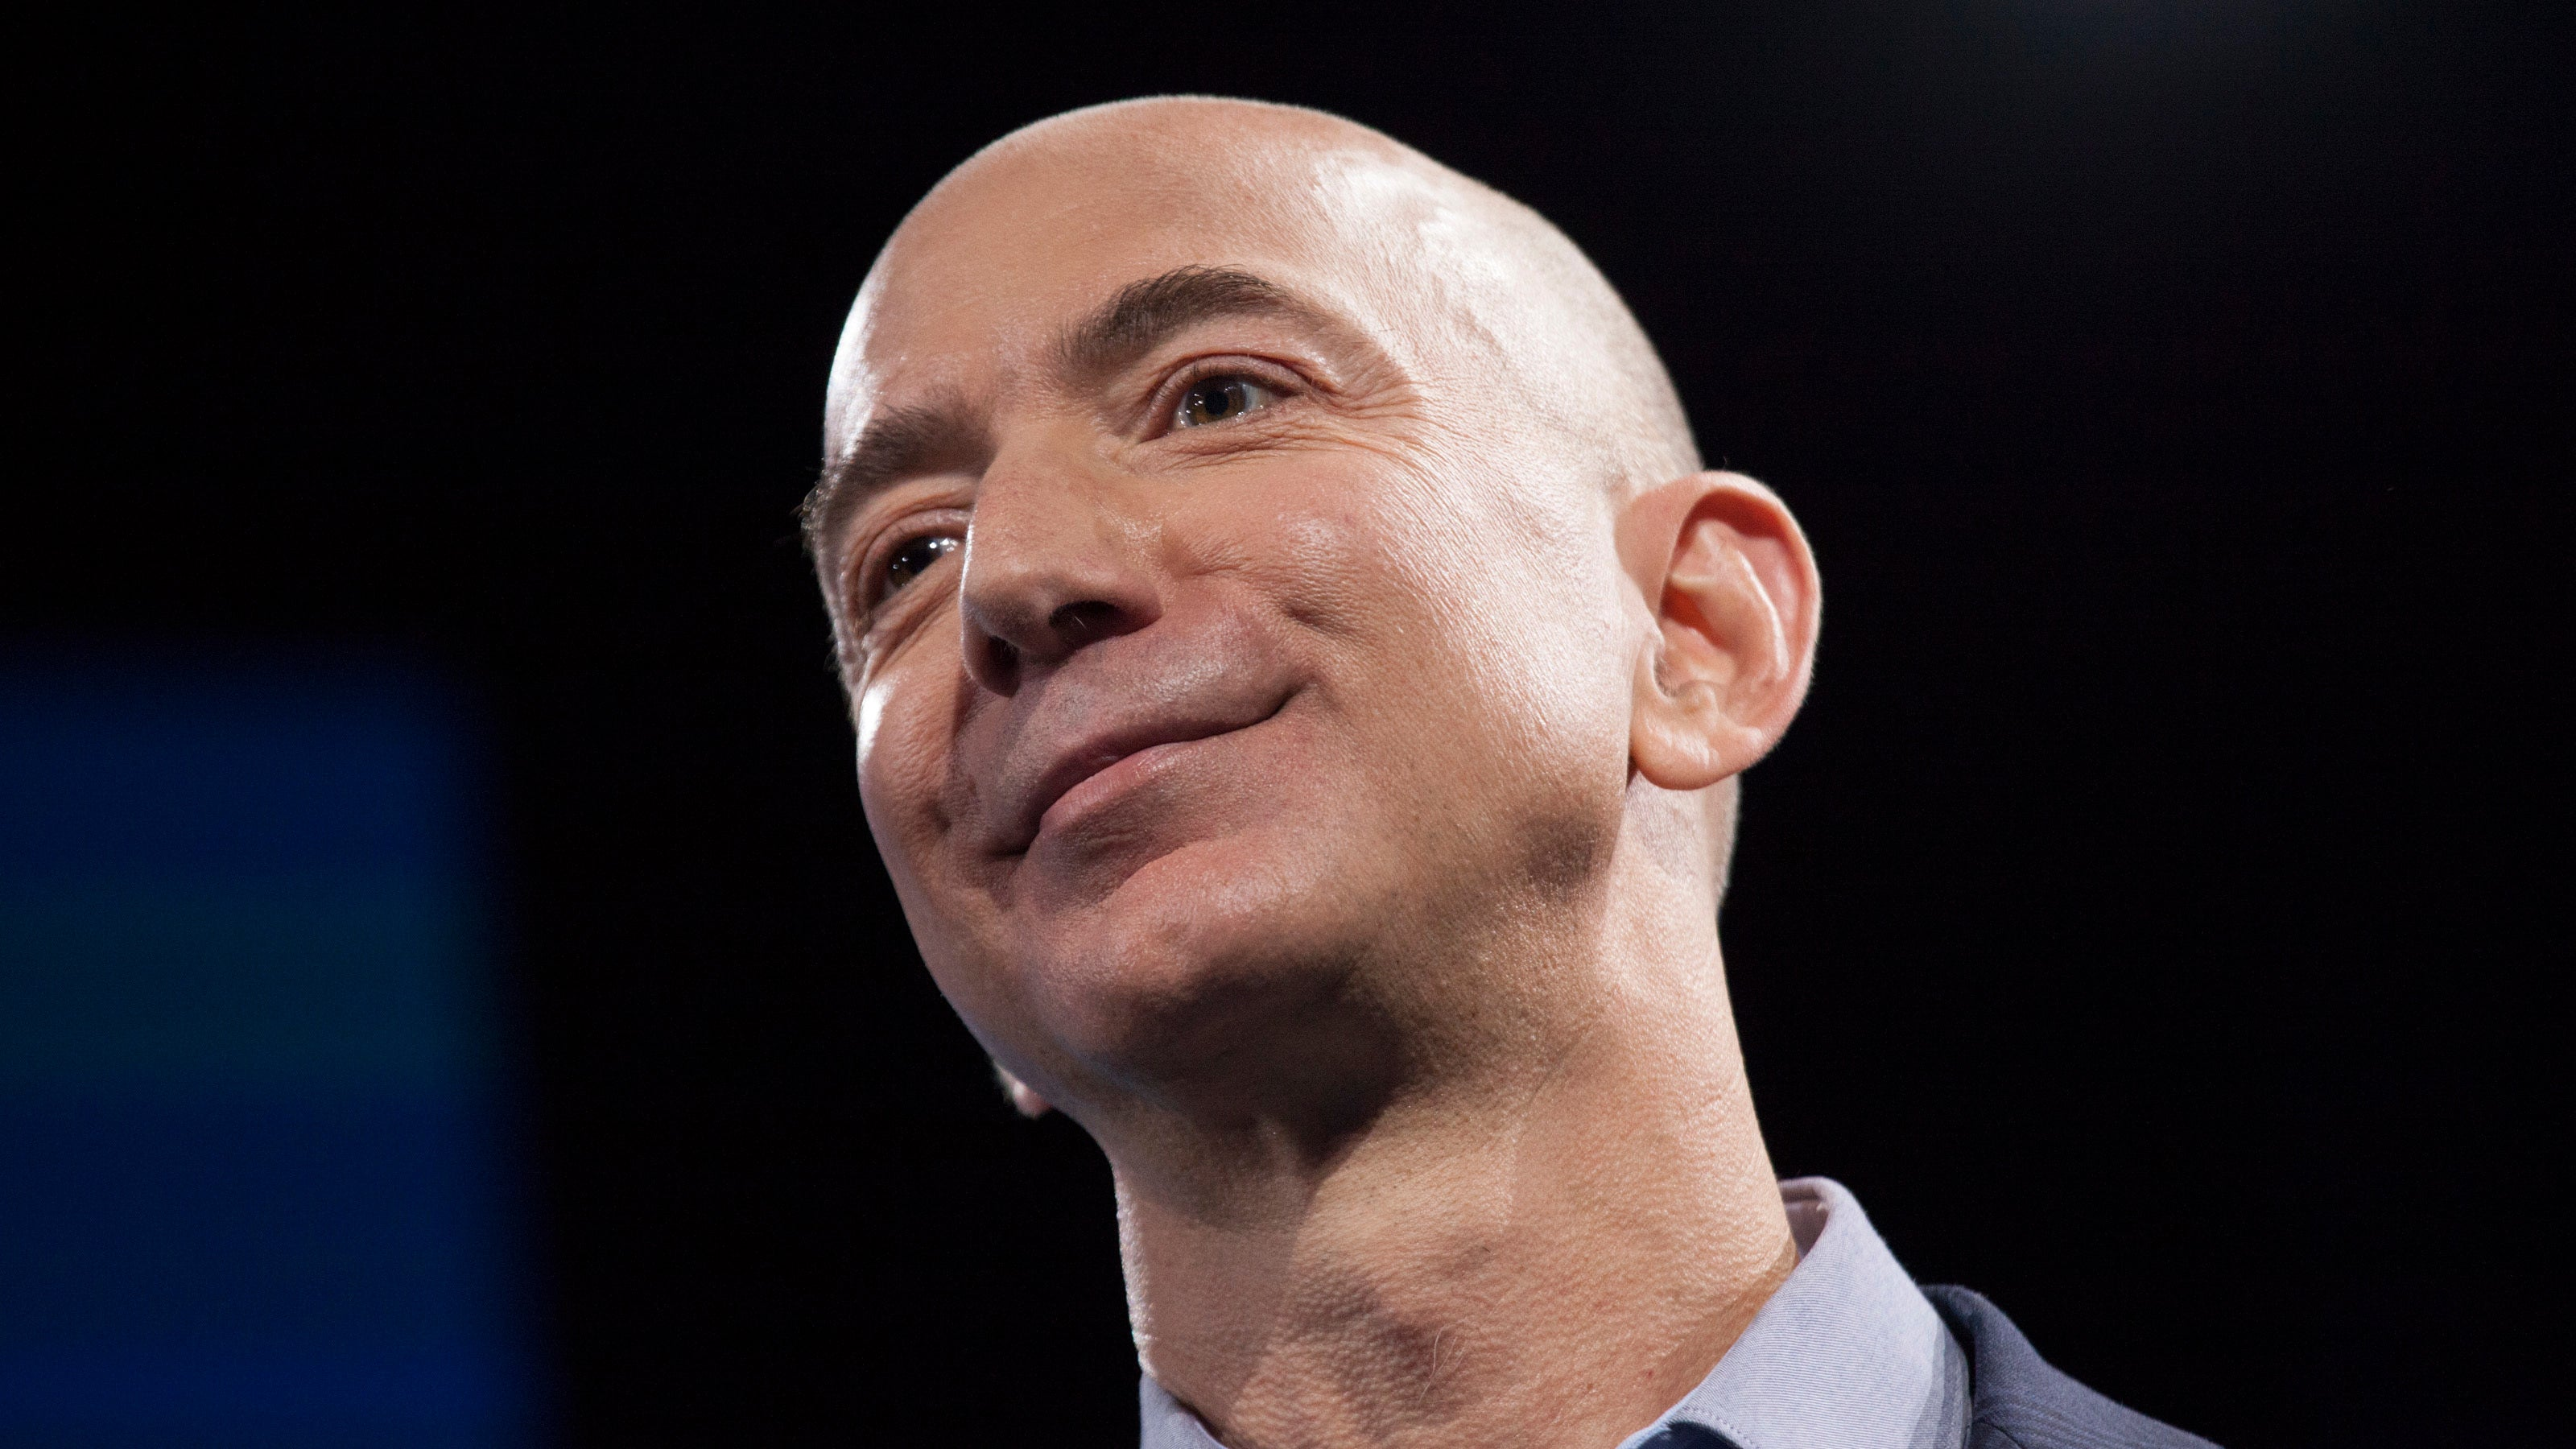 Jeff Bezos Surges Ahead Of Bill Gates To Become World's Richest Rich Guy